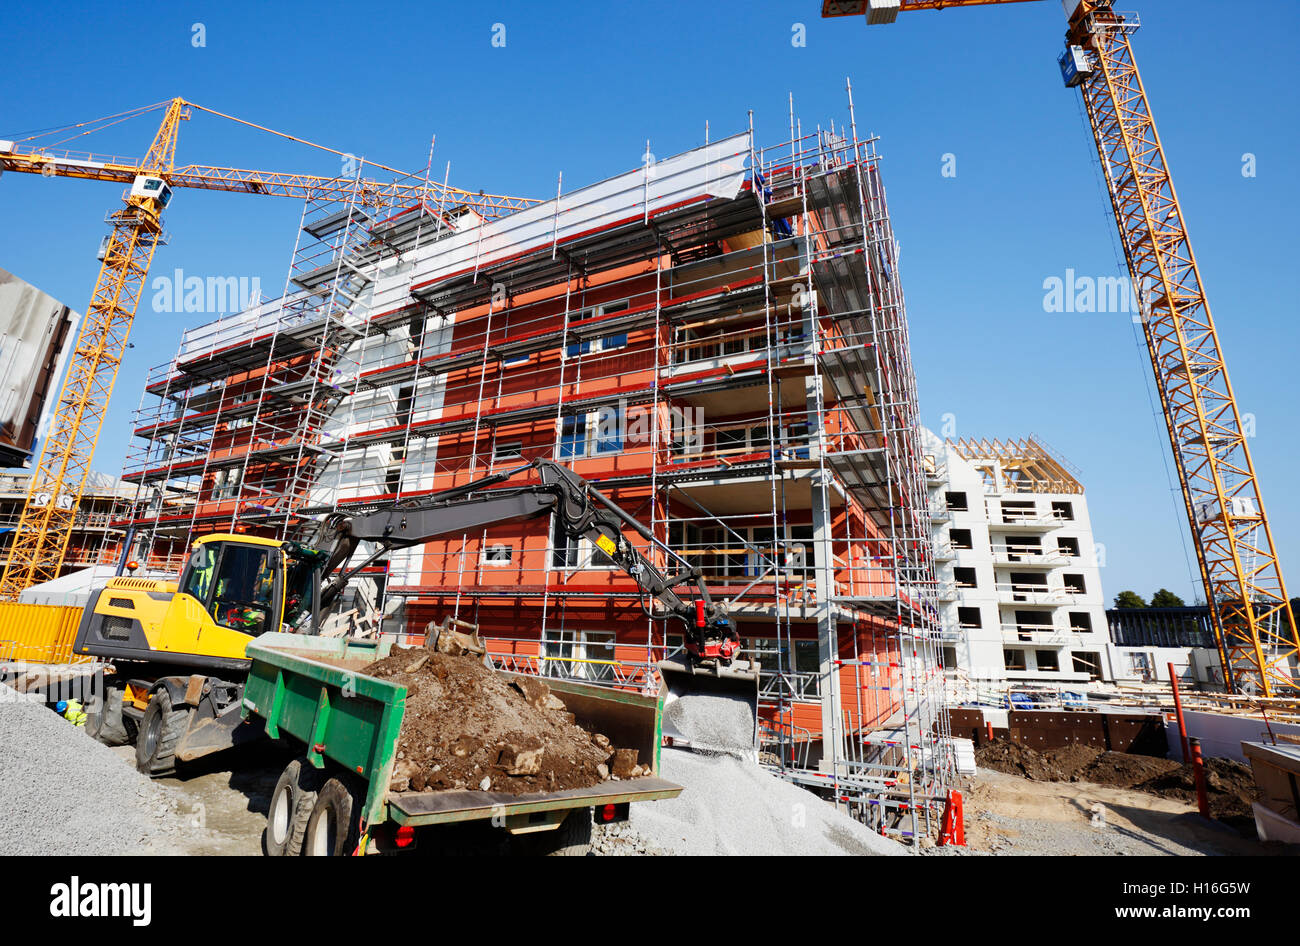 large construction plant, cranes and scaffolding - Stock Image